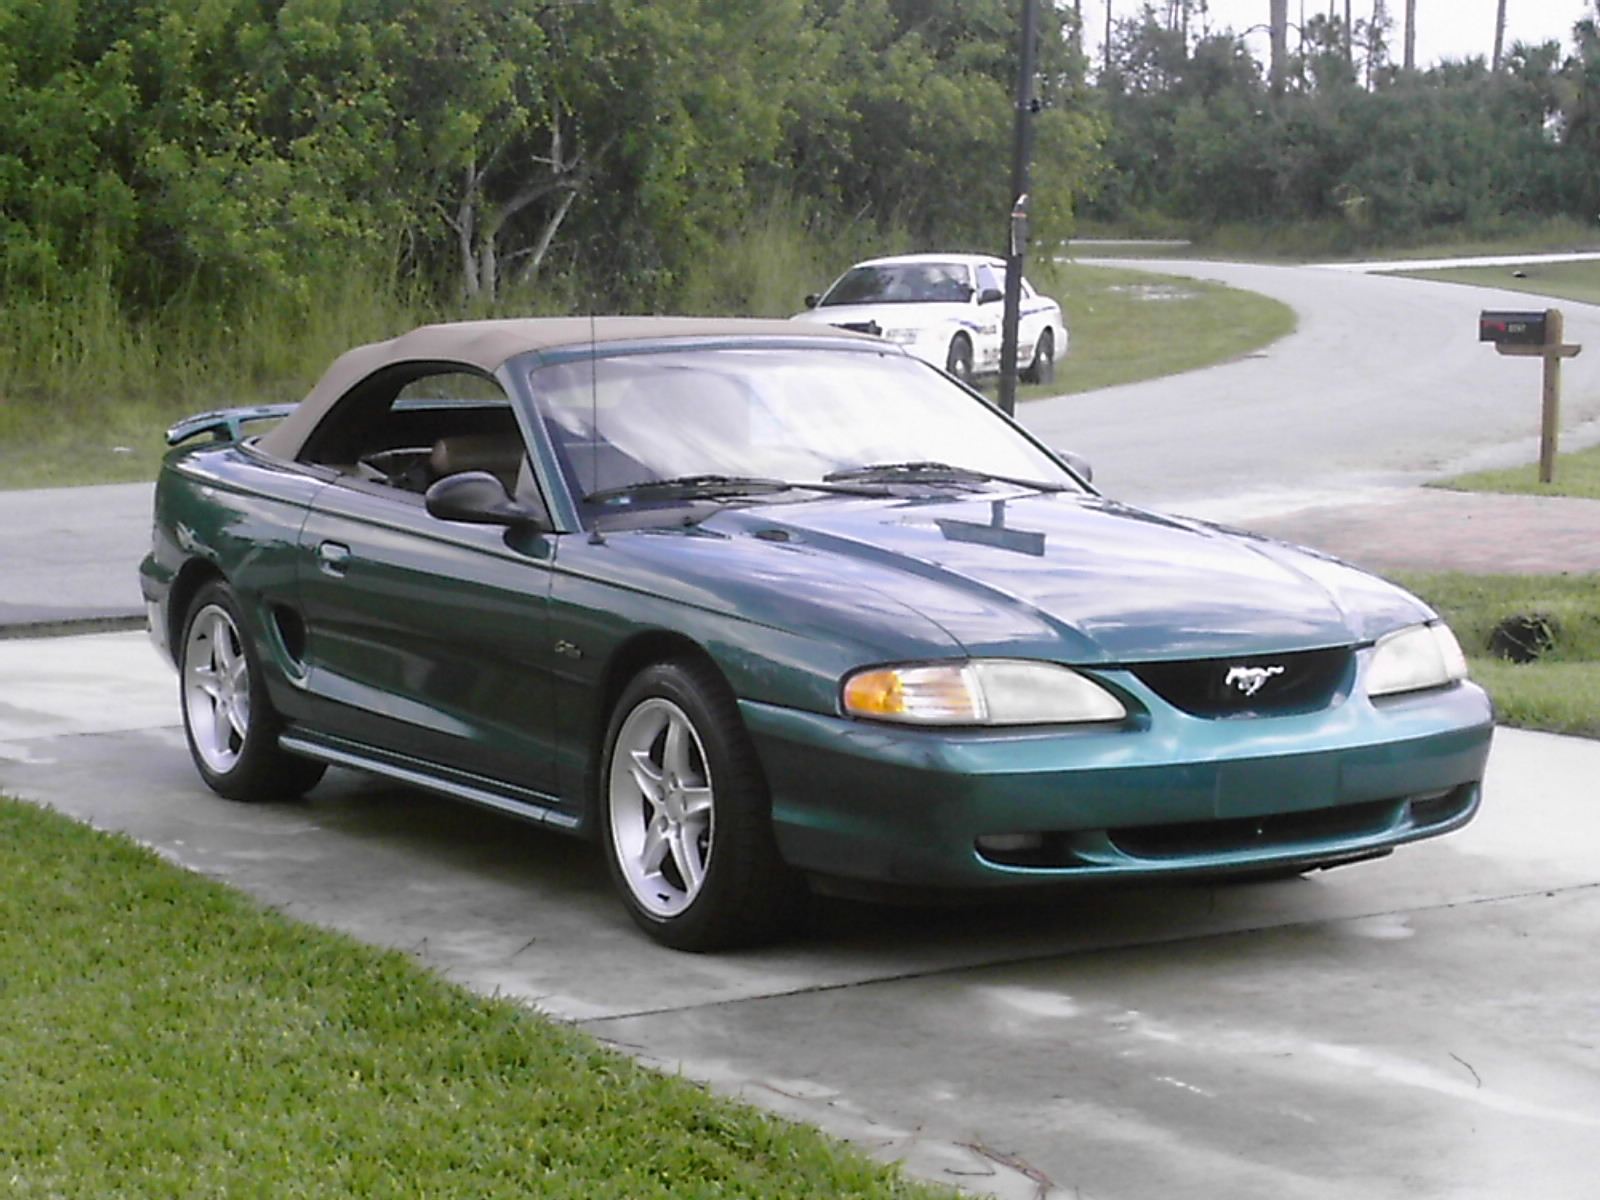 1997 ford mustang gt convertible picture mods upgrades